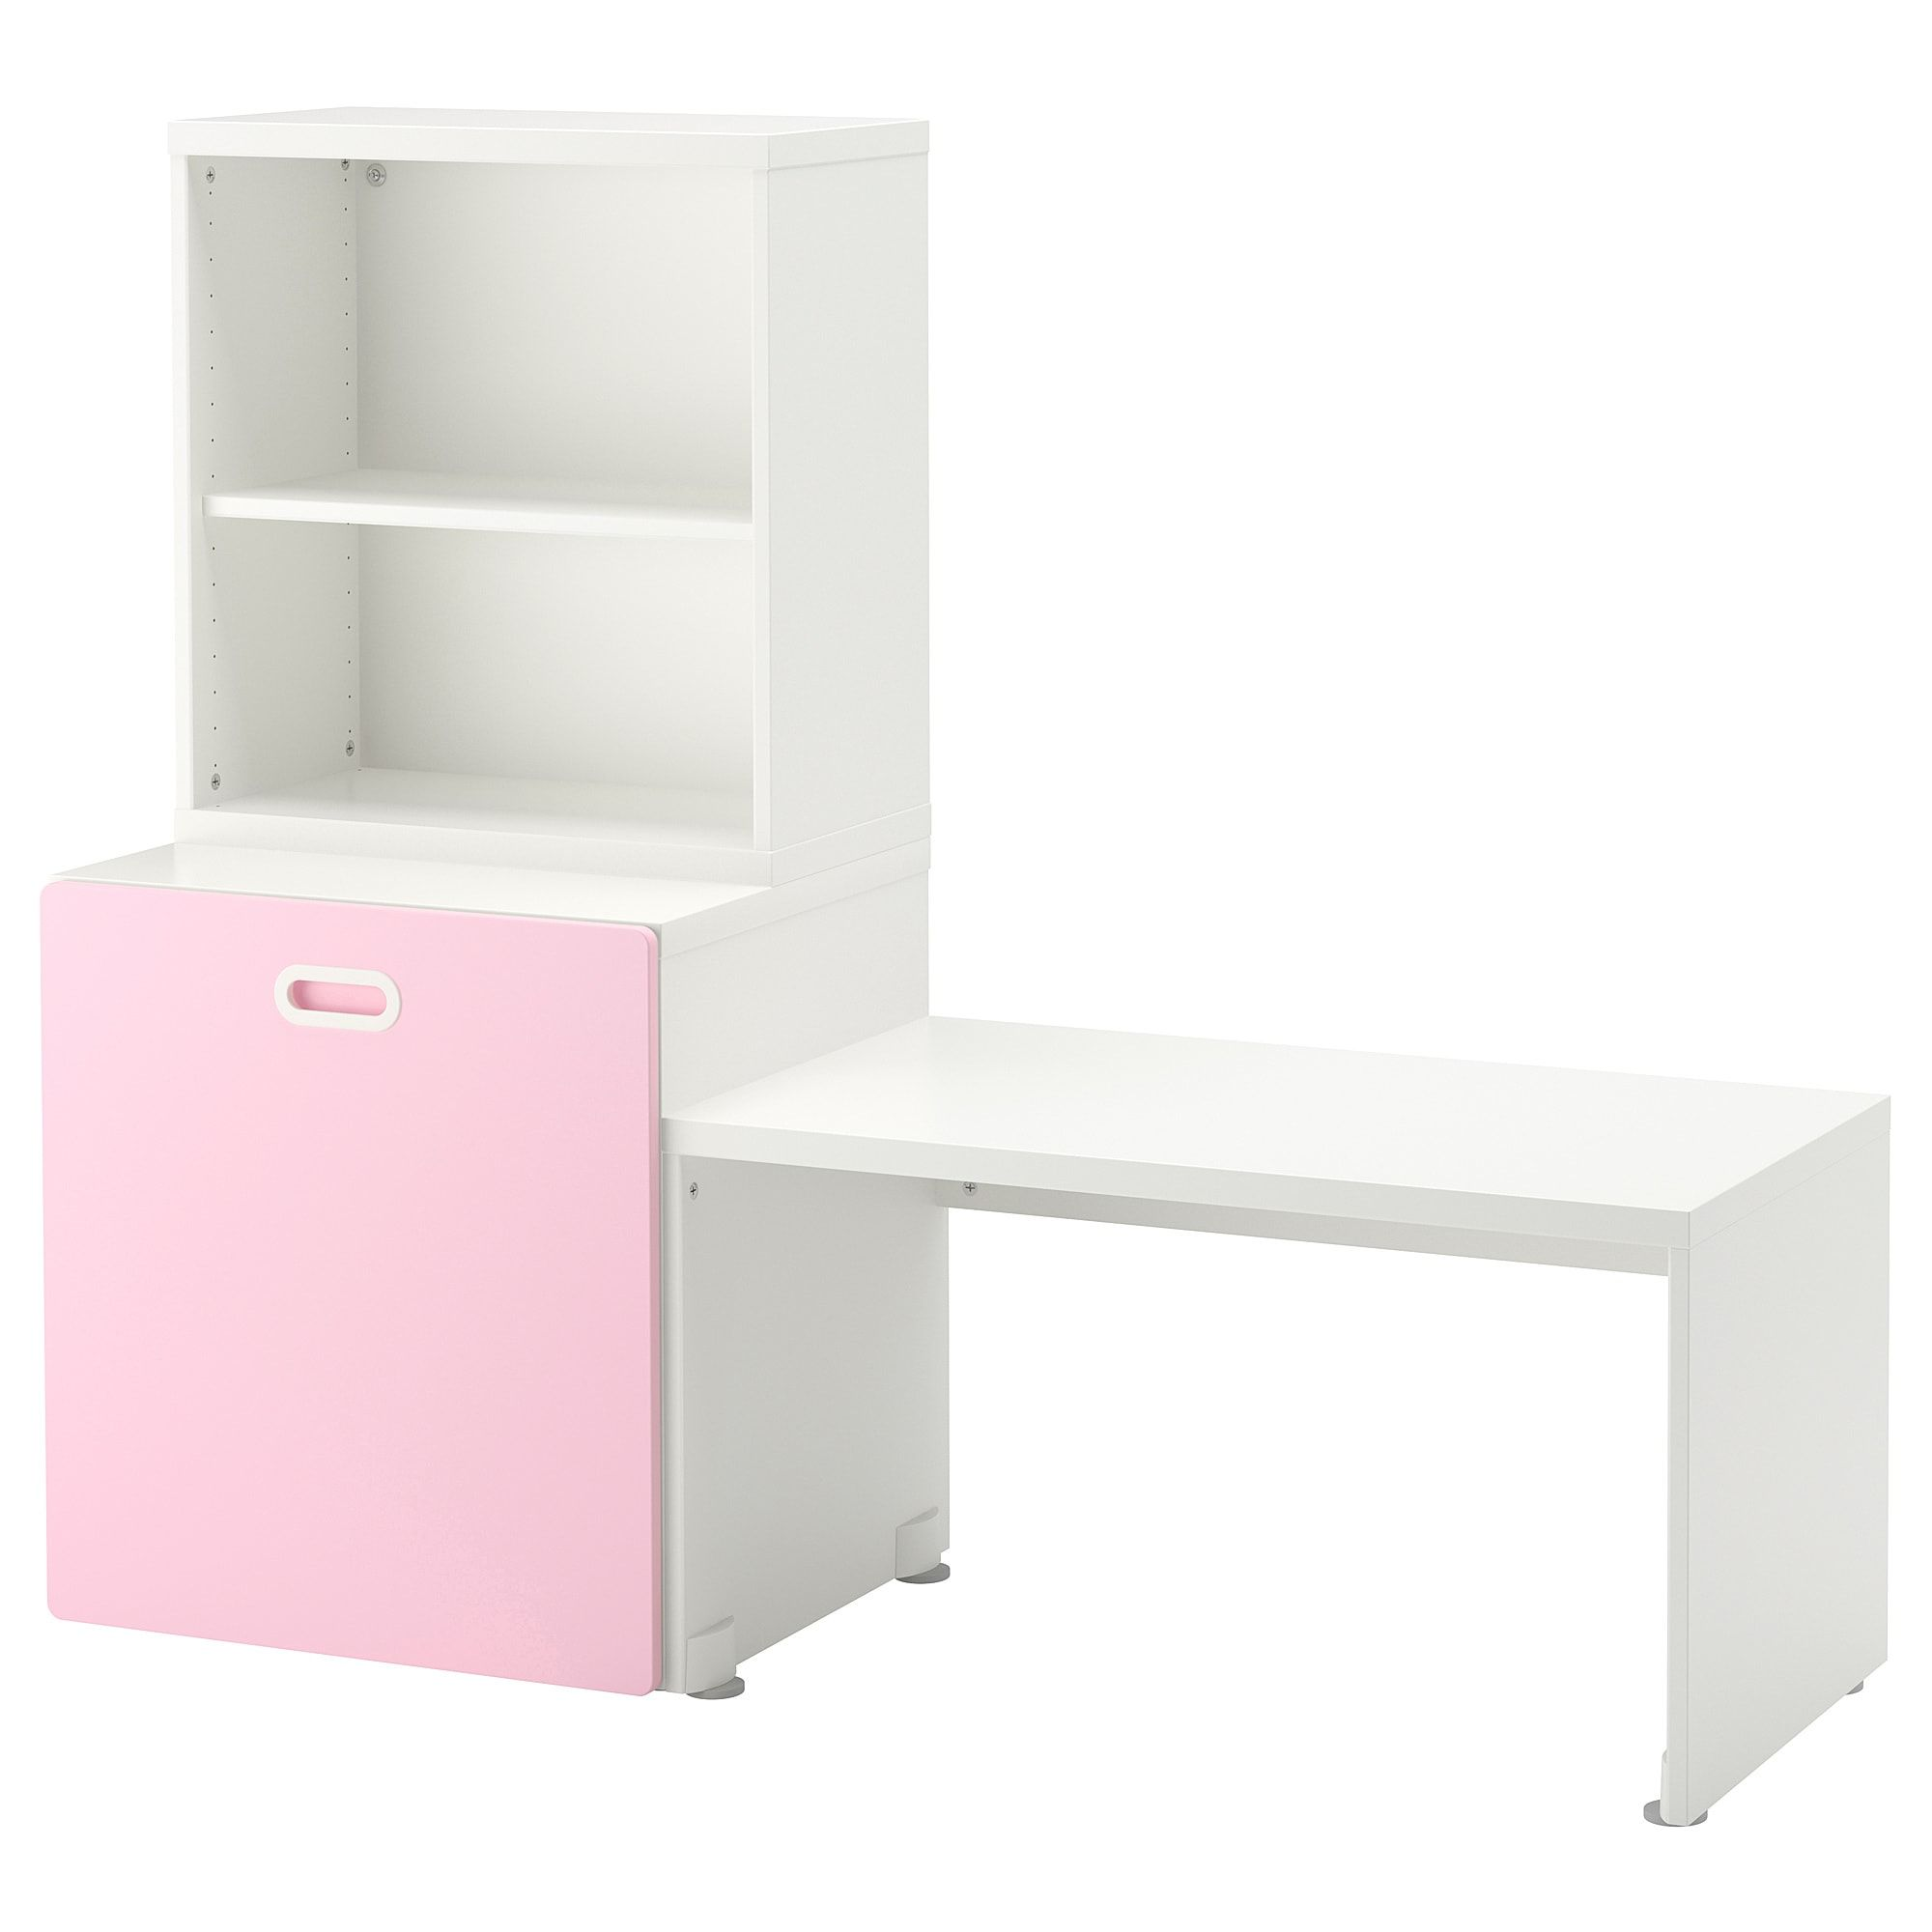 STUVA / FRITIDS Table with toy storage, white, light pink, 6x6 6